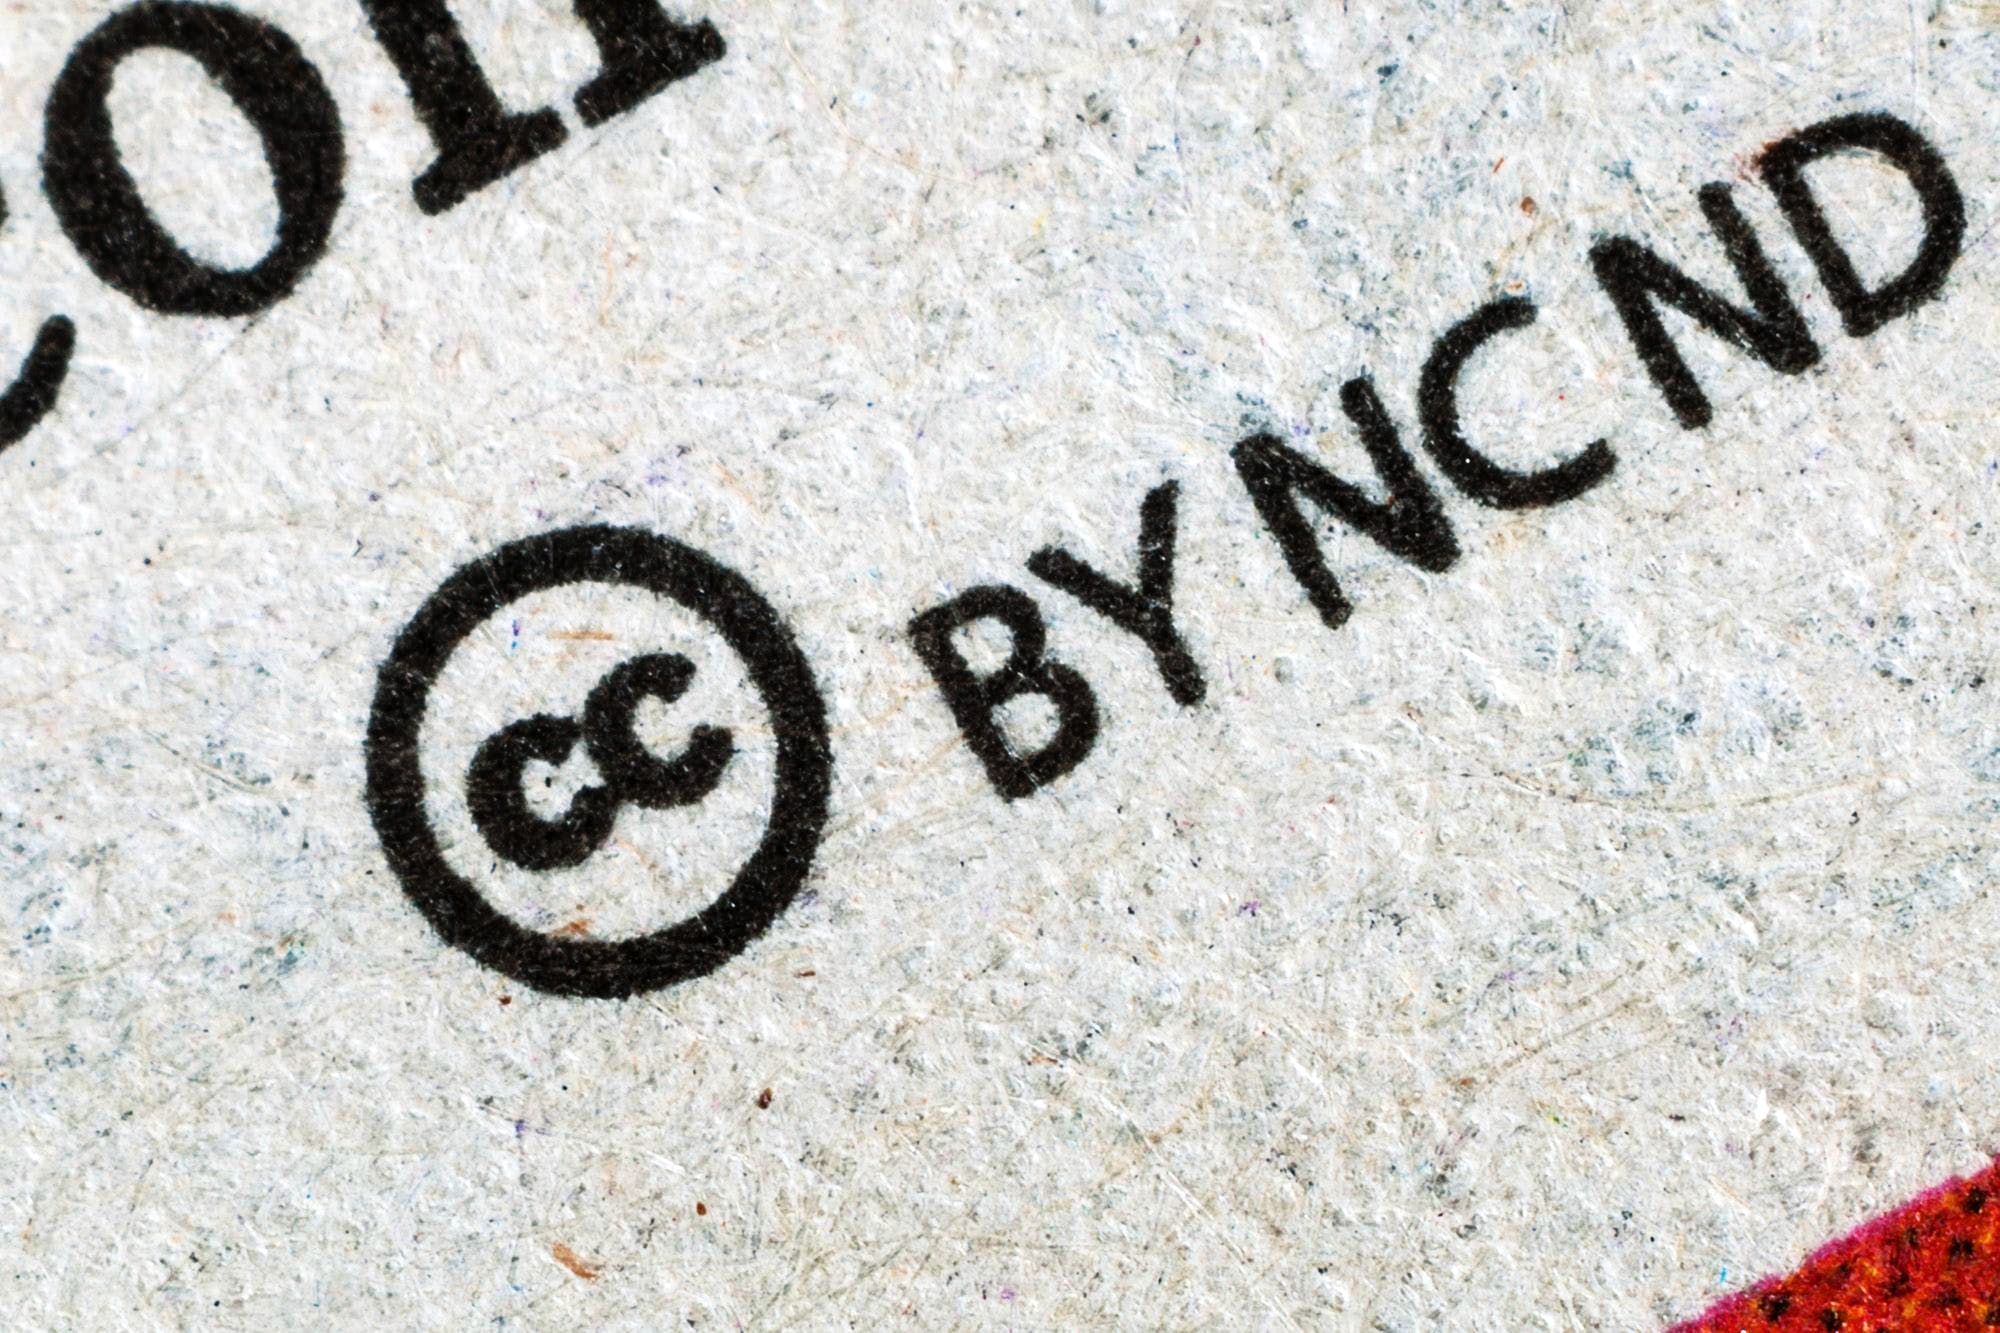 4 Basic U.S. Intellectual Property Concepts Every Startup Founder Should Know, According to Immix Law's Leigh Gill